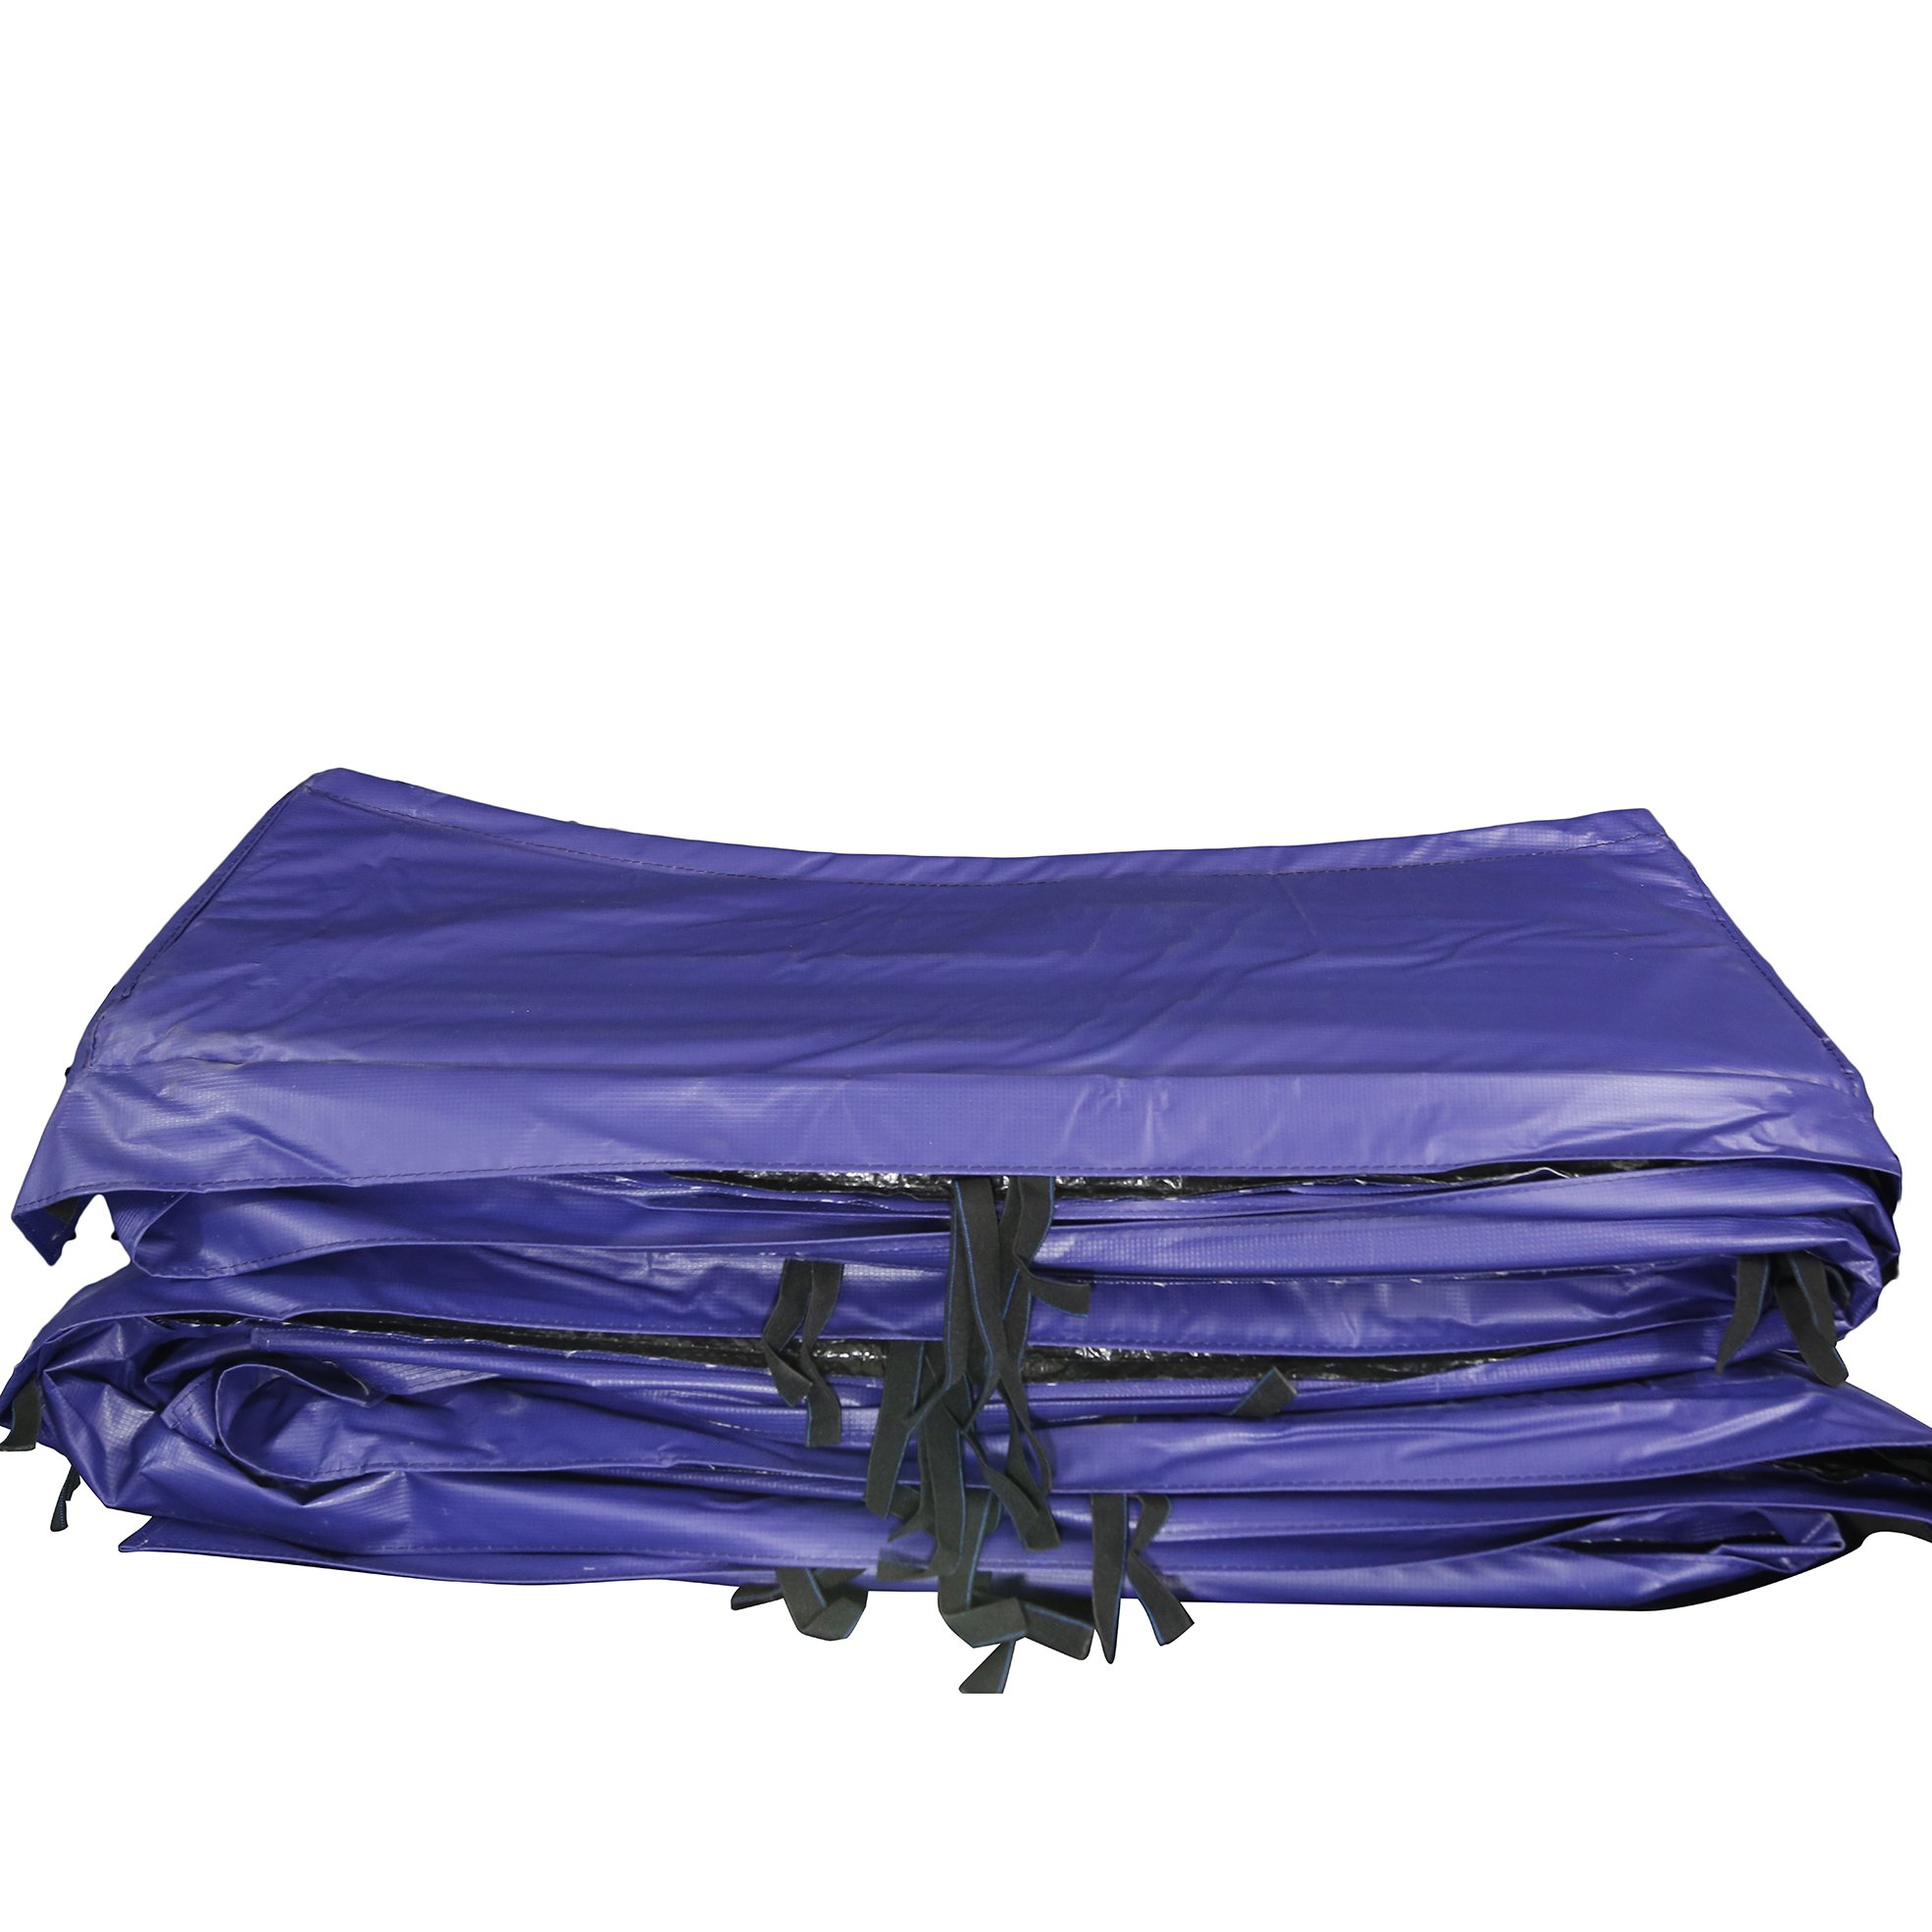 Skywalker Trampolines Round Spring Pad, 12', Blue by Skywalker Trampolines